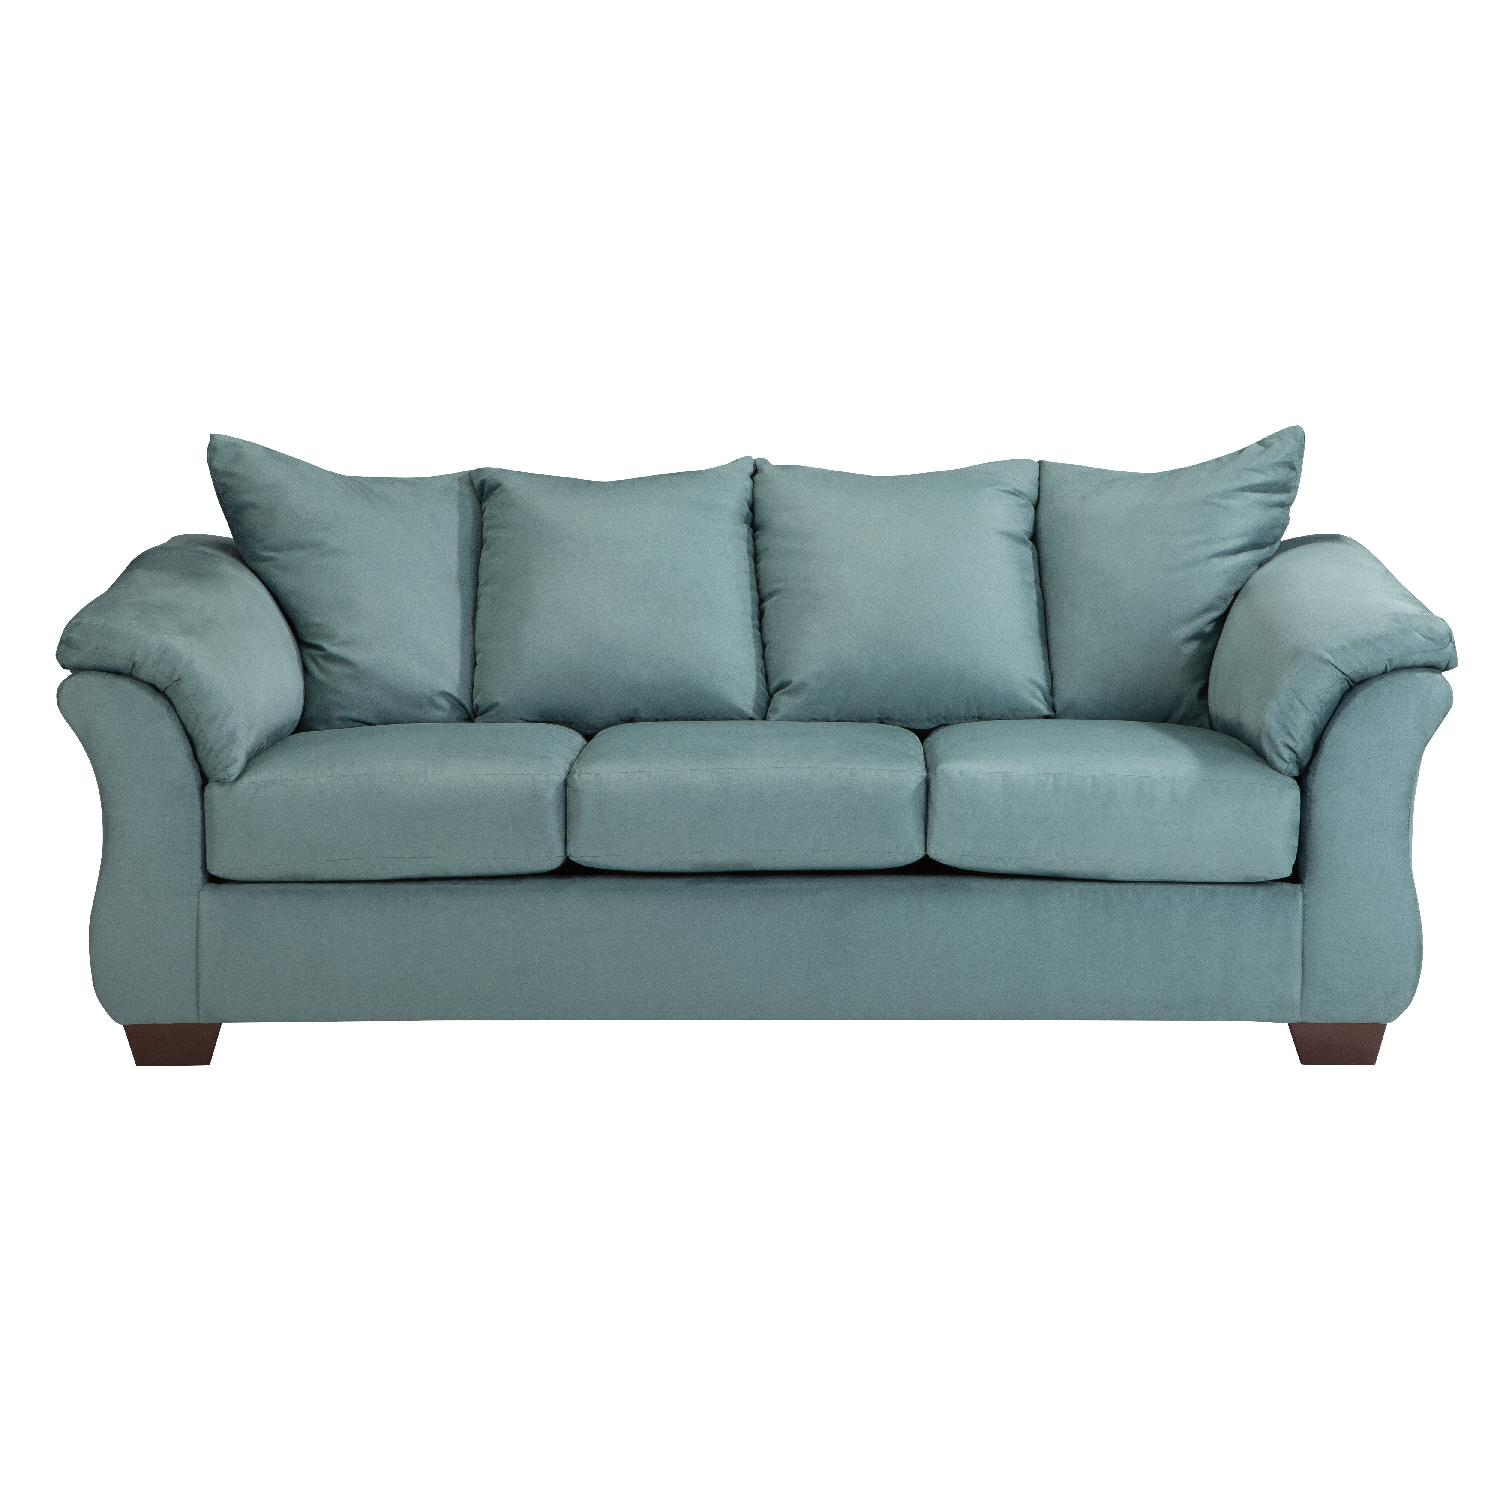 Ashley's Darcy Contemporary Sofa in Sky Blue Microsuade